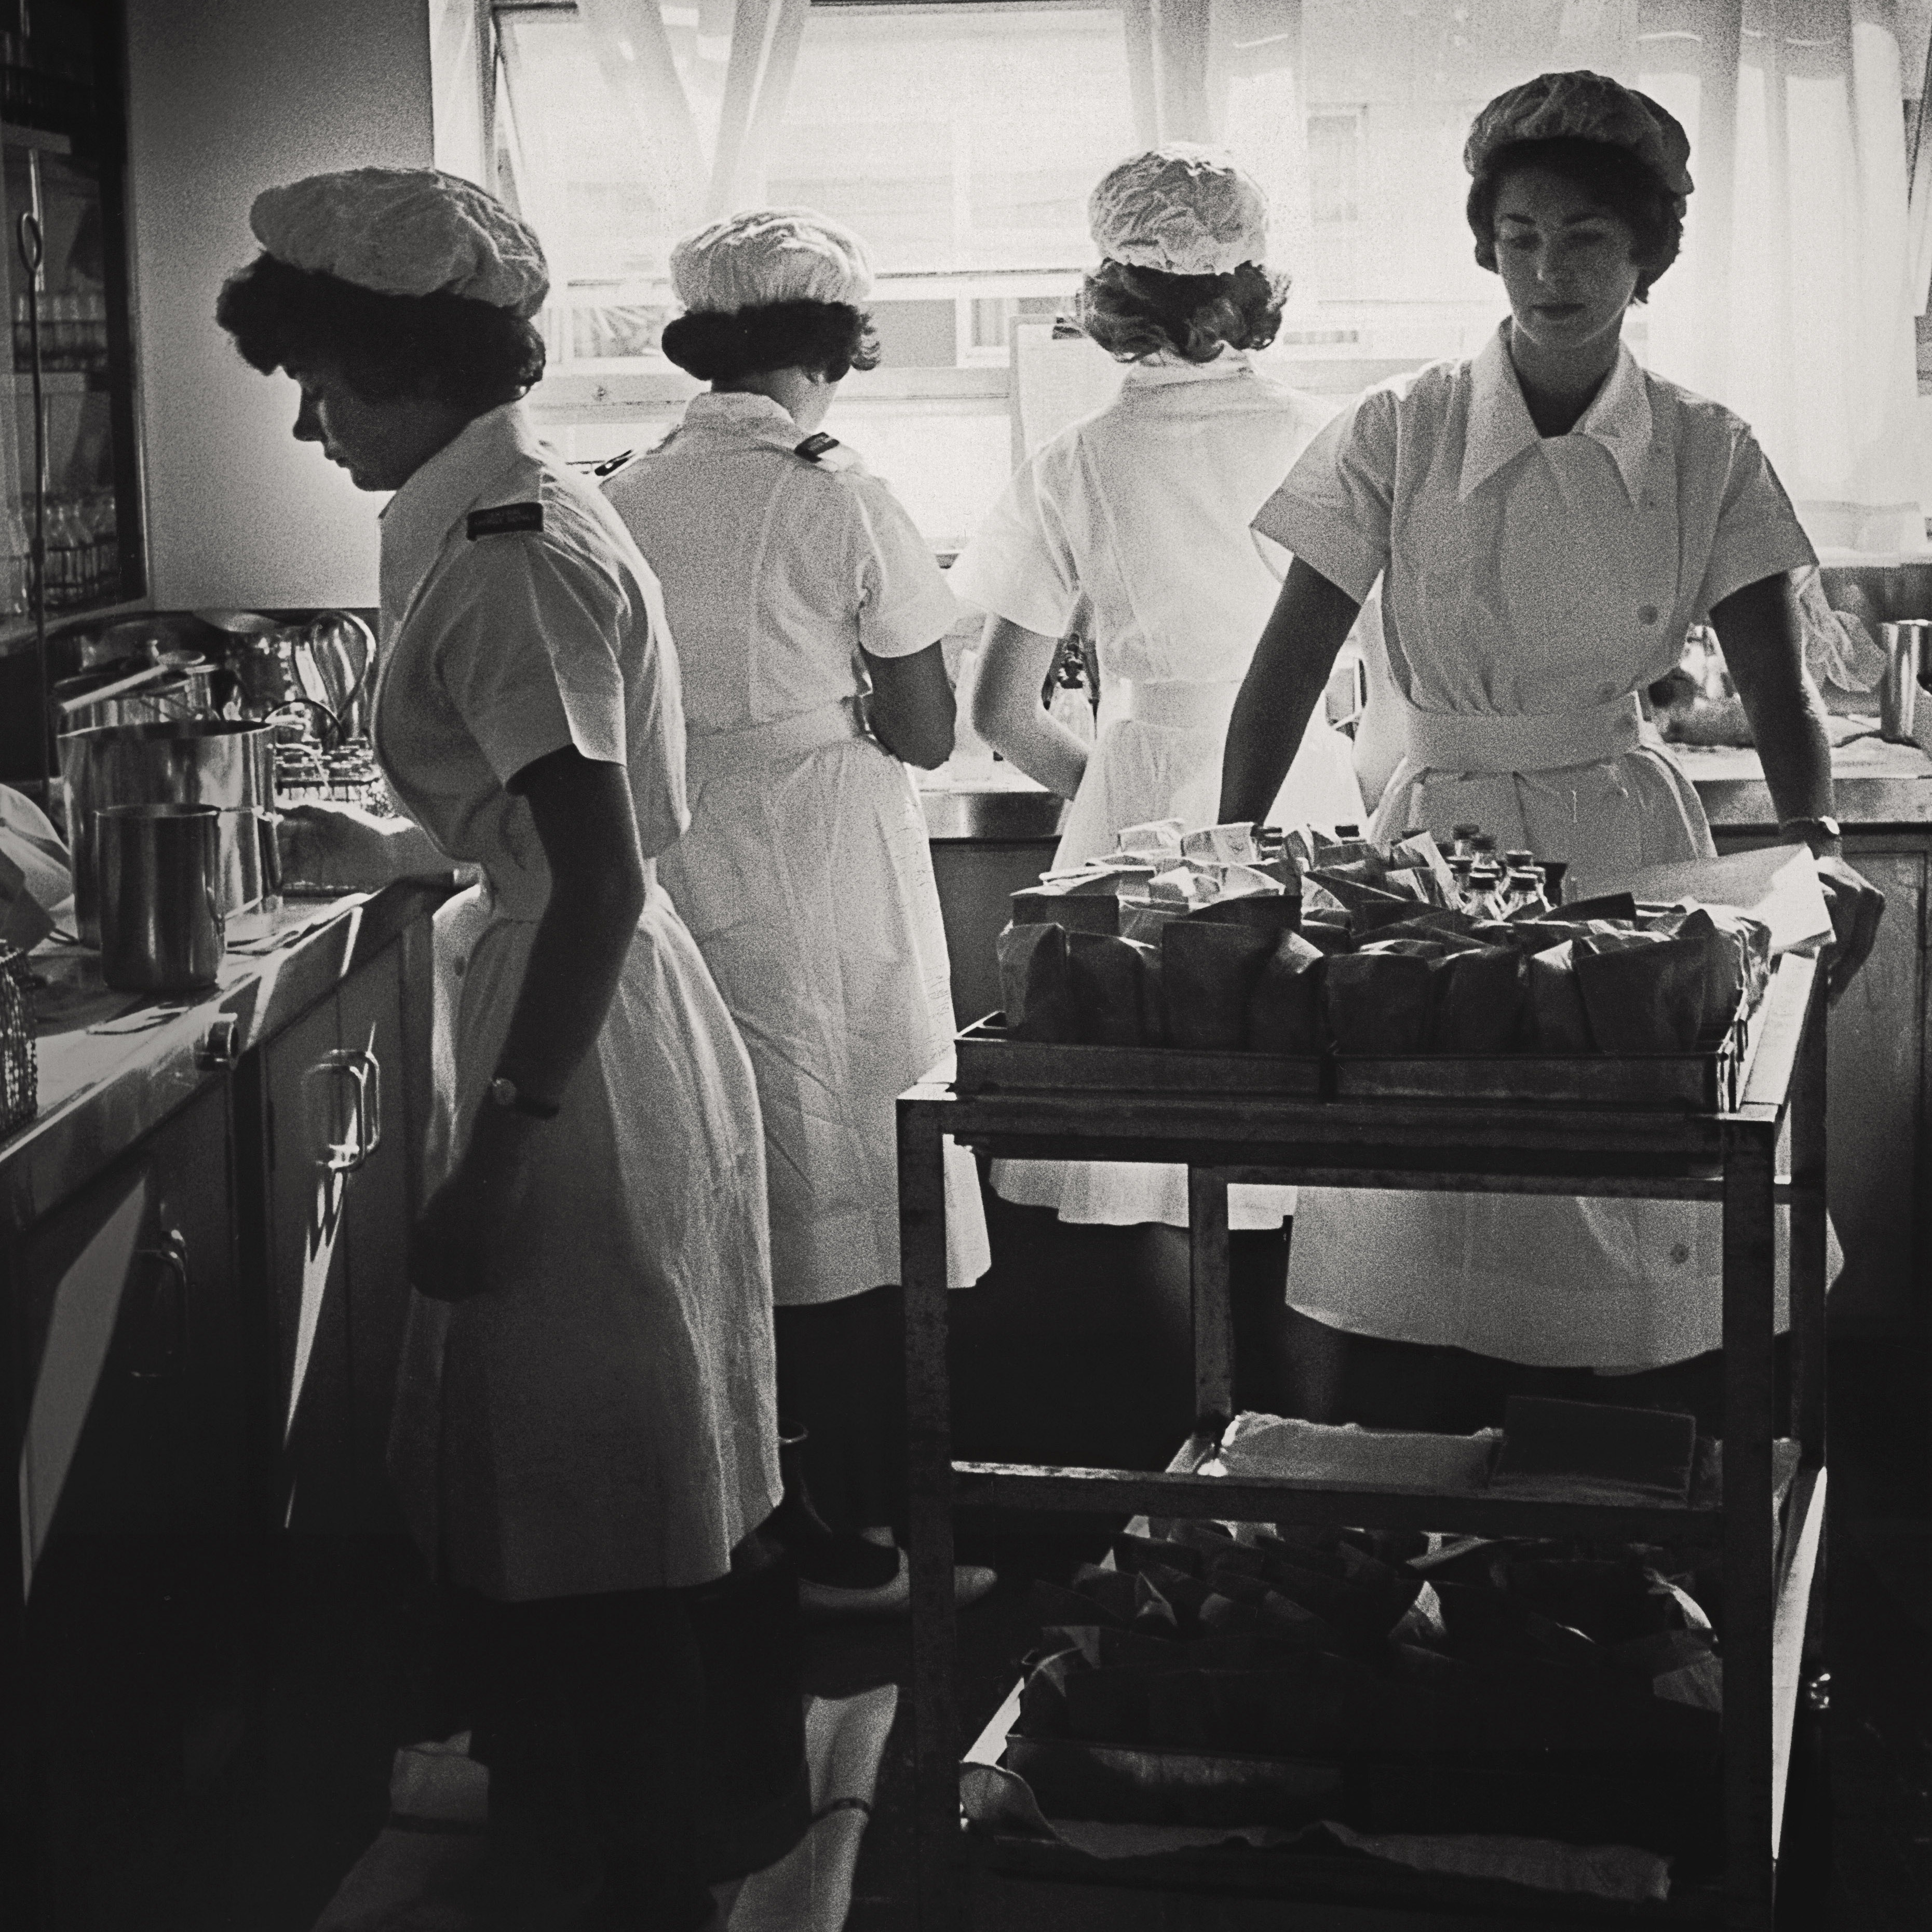 Cover detail, The Rise and Fall of National Women's Hospital, Linda Brdyer